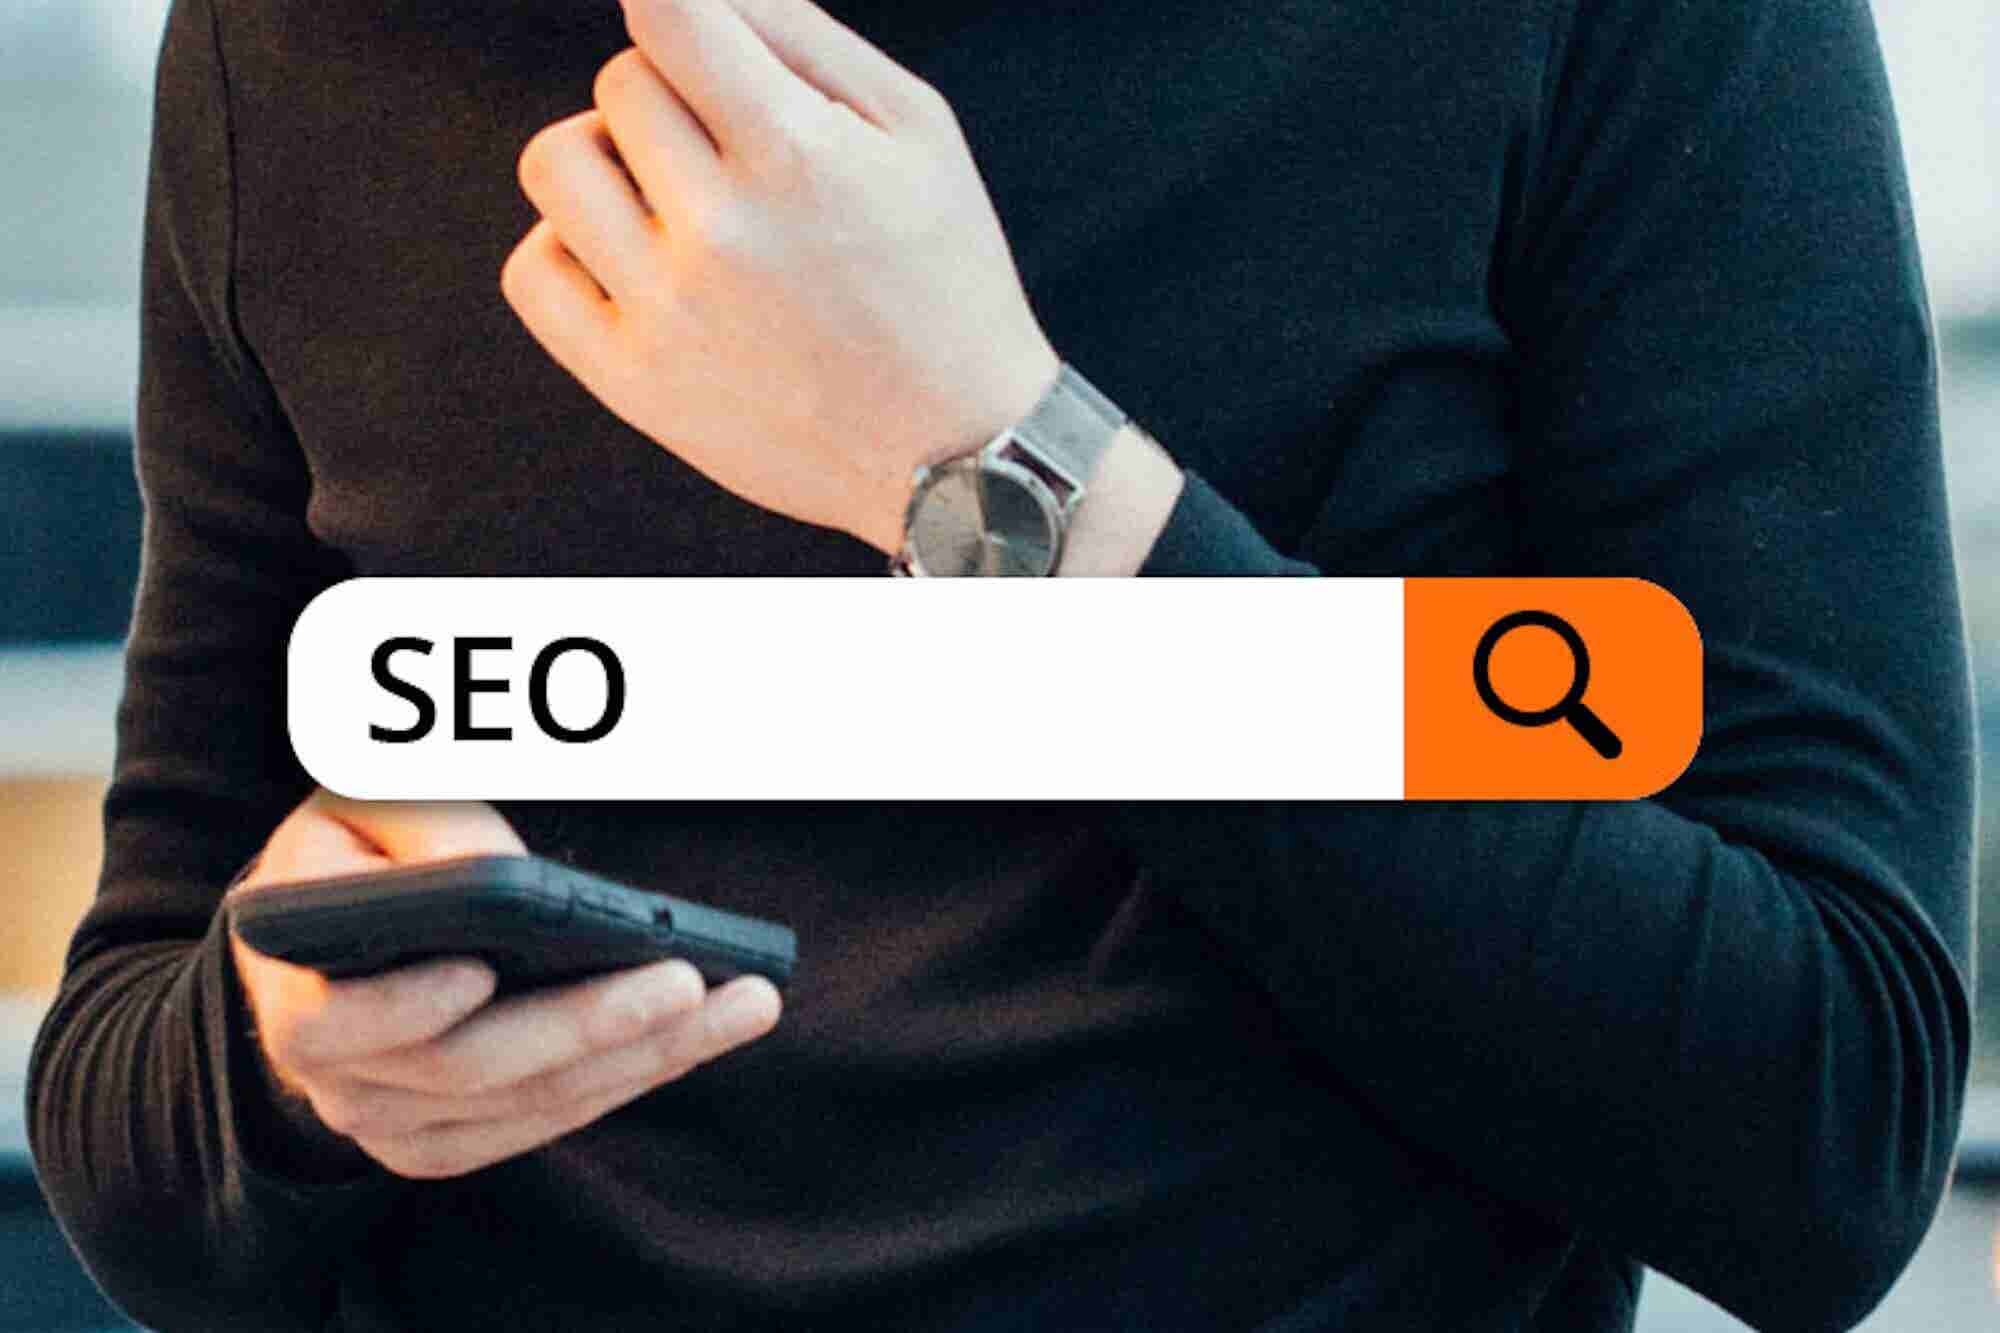 Boost Your Website's Visibility With This SEO Course